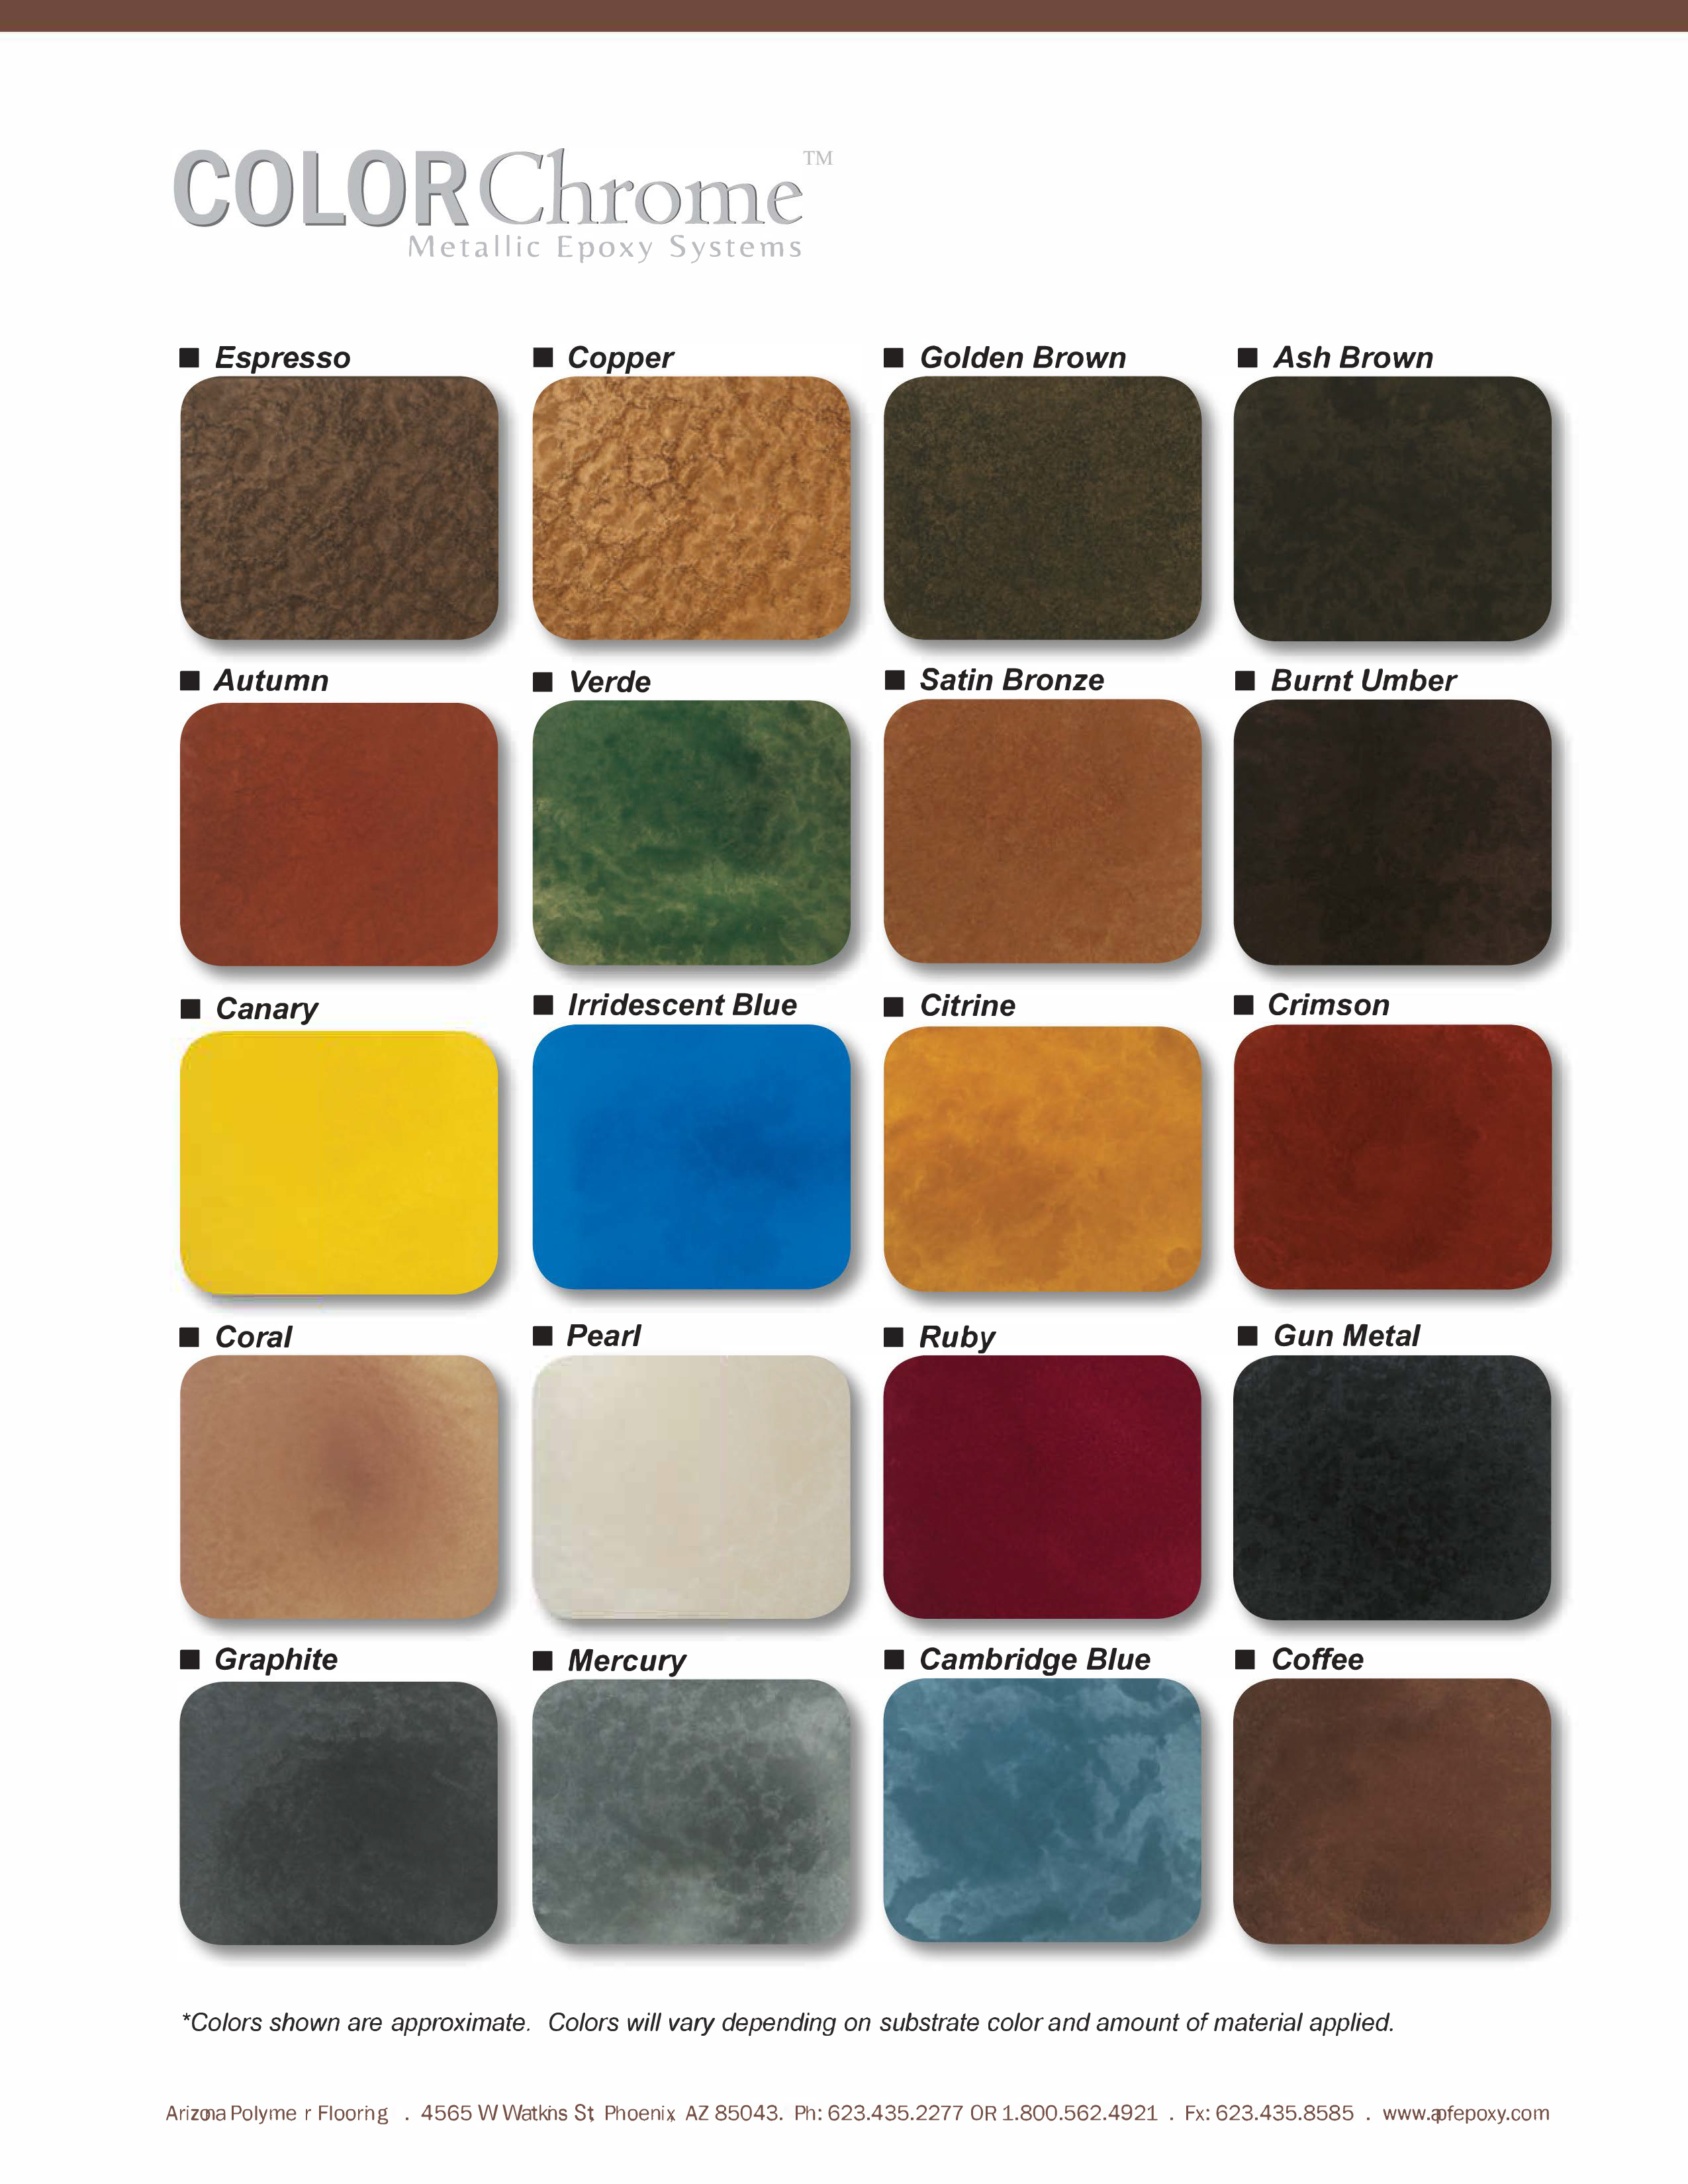 Apf Colorchrome Color Chart 917 Benhardt Construction And Remodeling